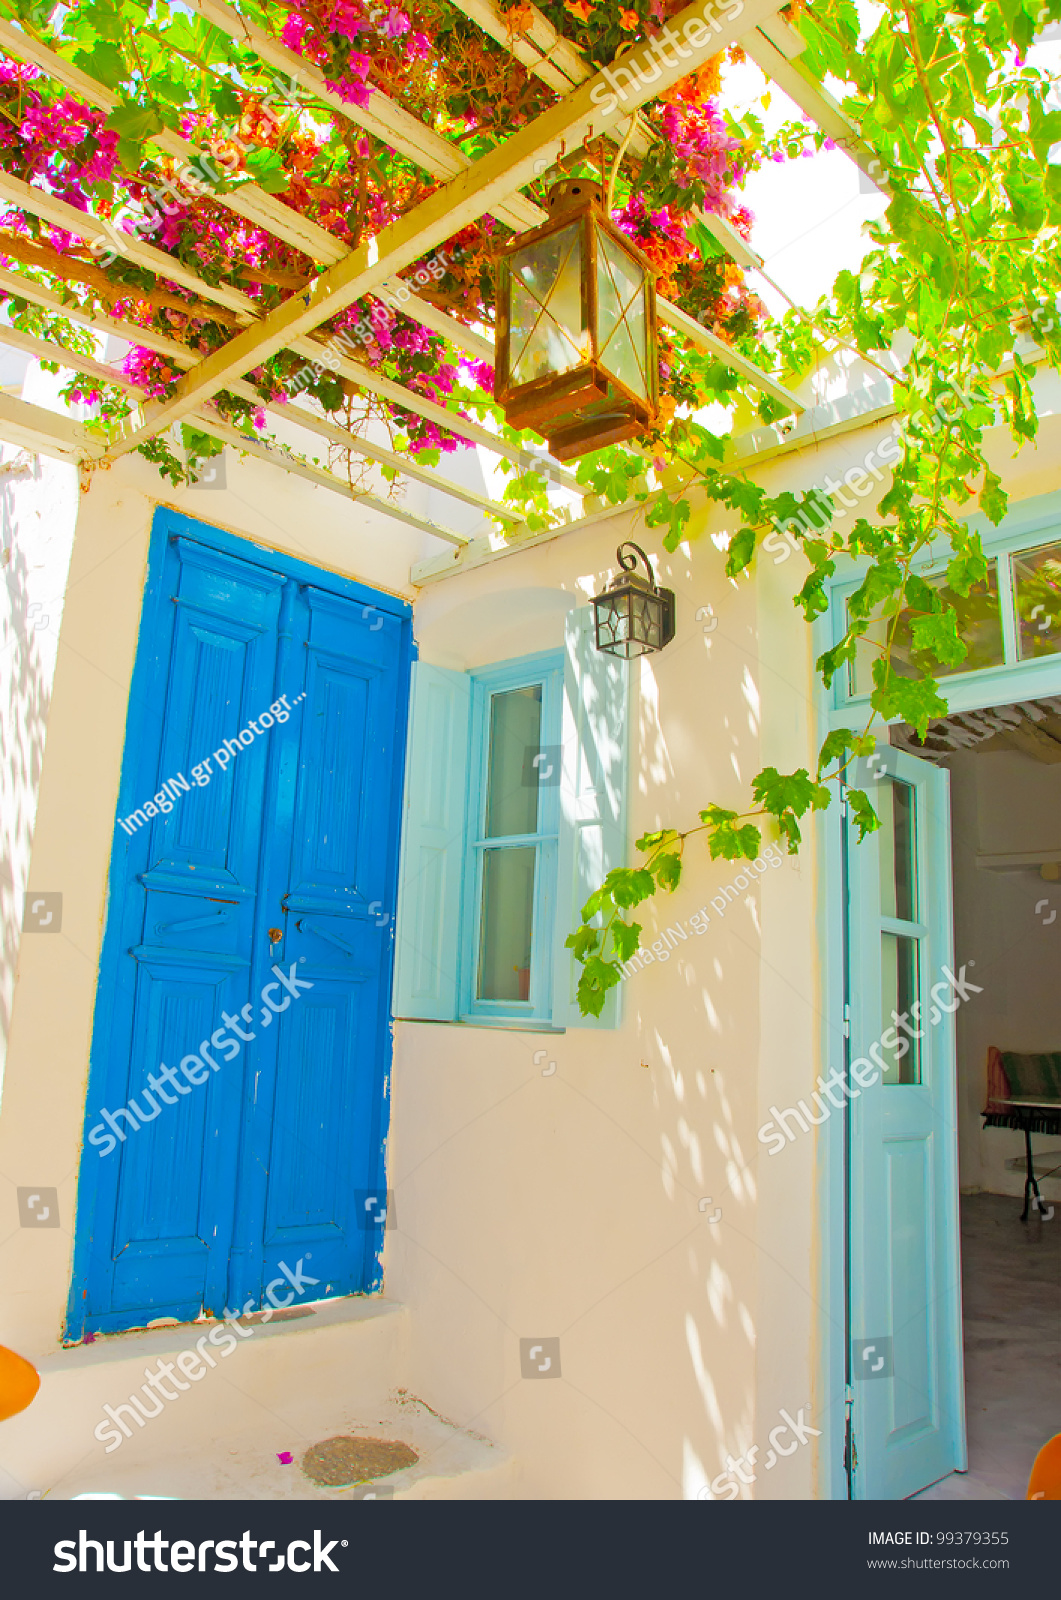 Old beautiful traditional house in chora the capital of amorgos island - A Beautiful Traditional Old House With Pergola And Blue Colored Doors And Windows In Chora The